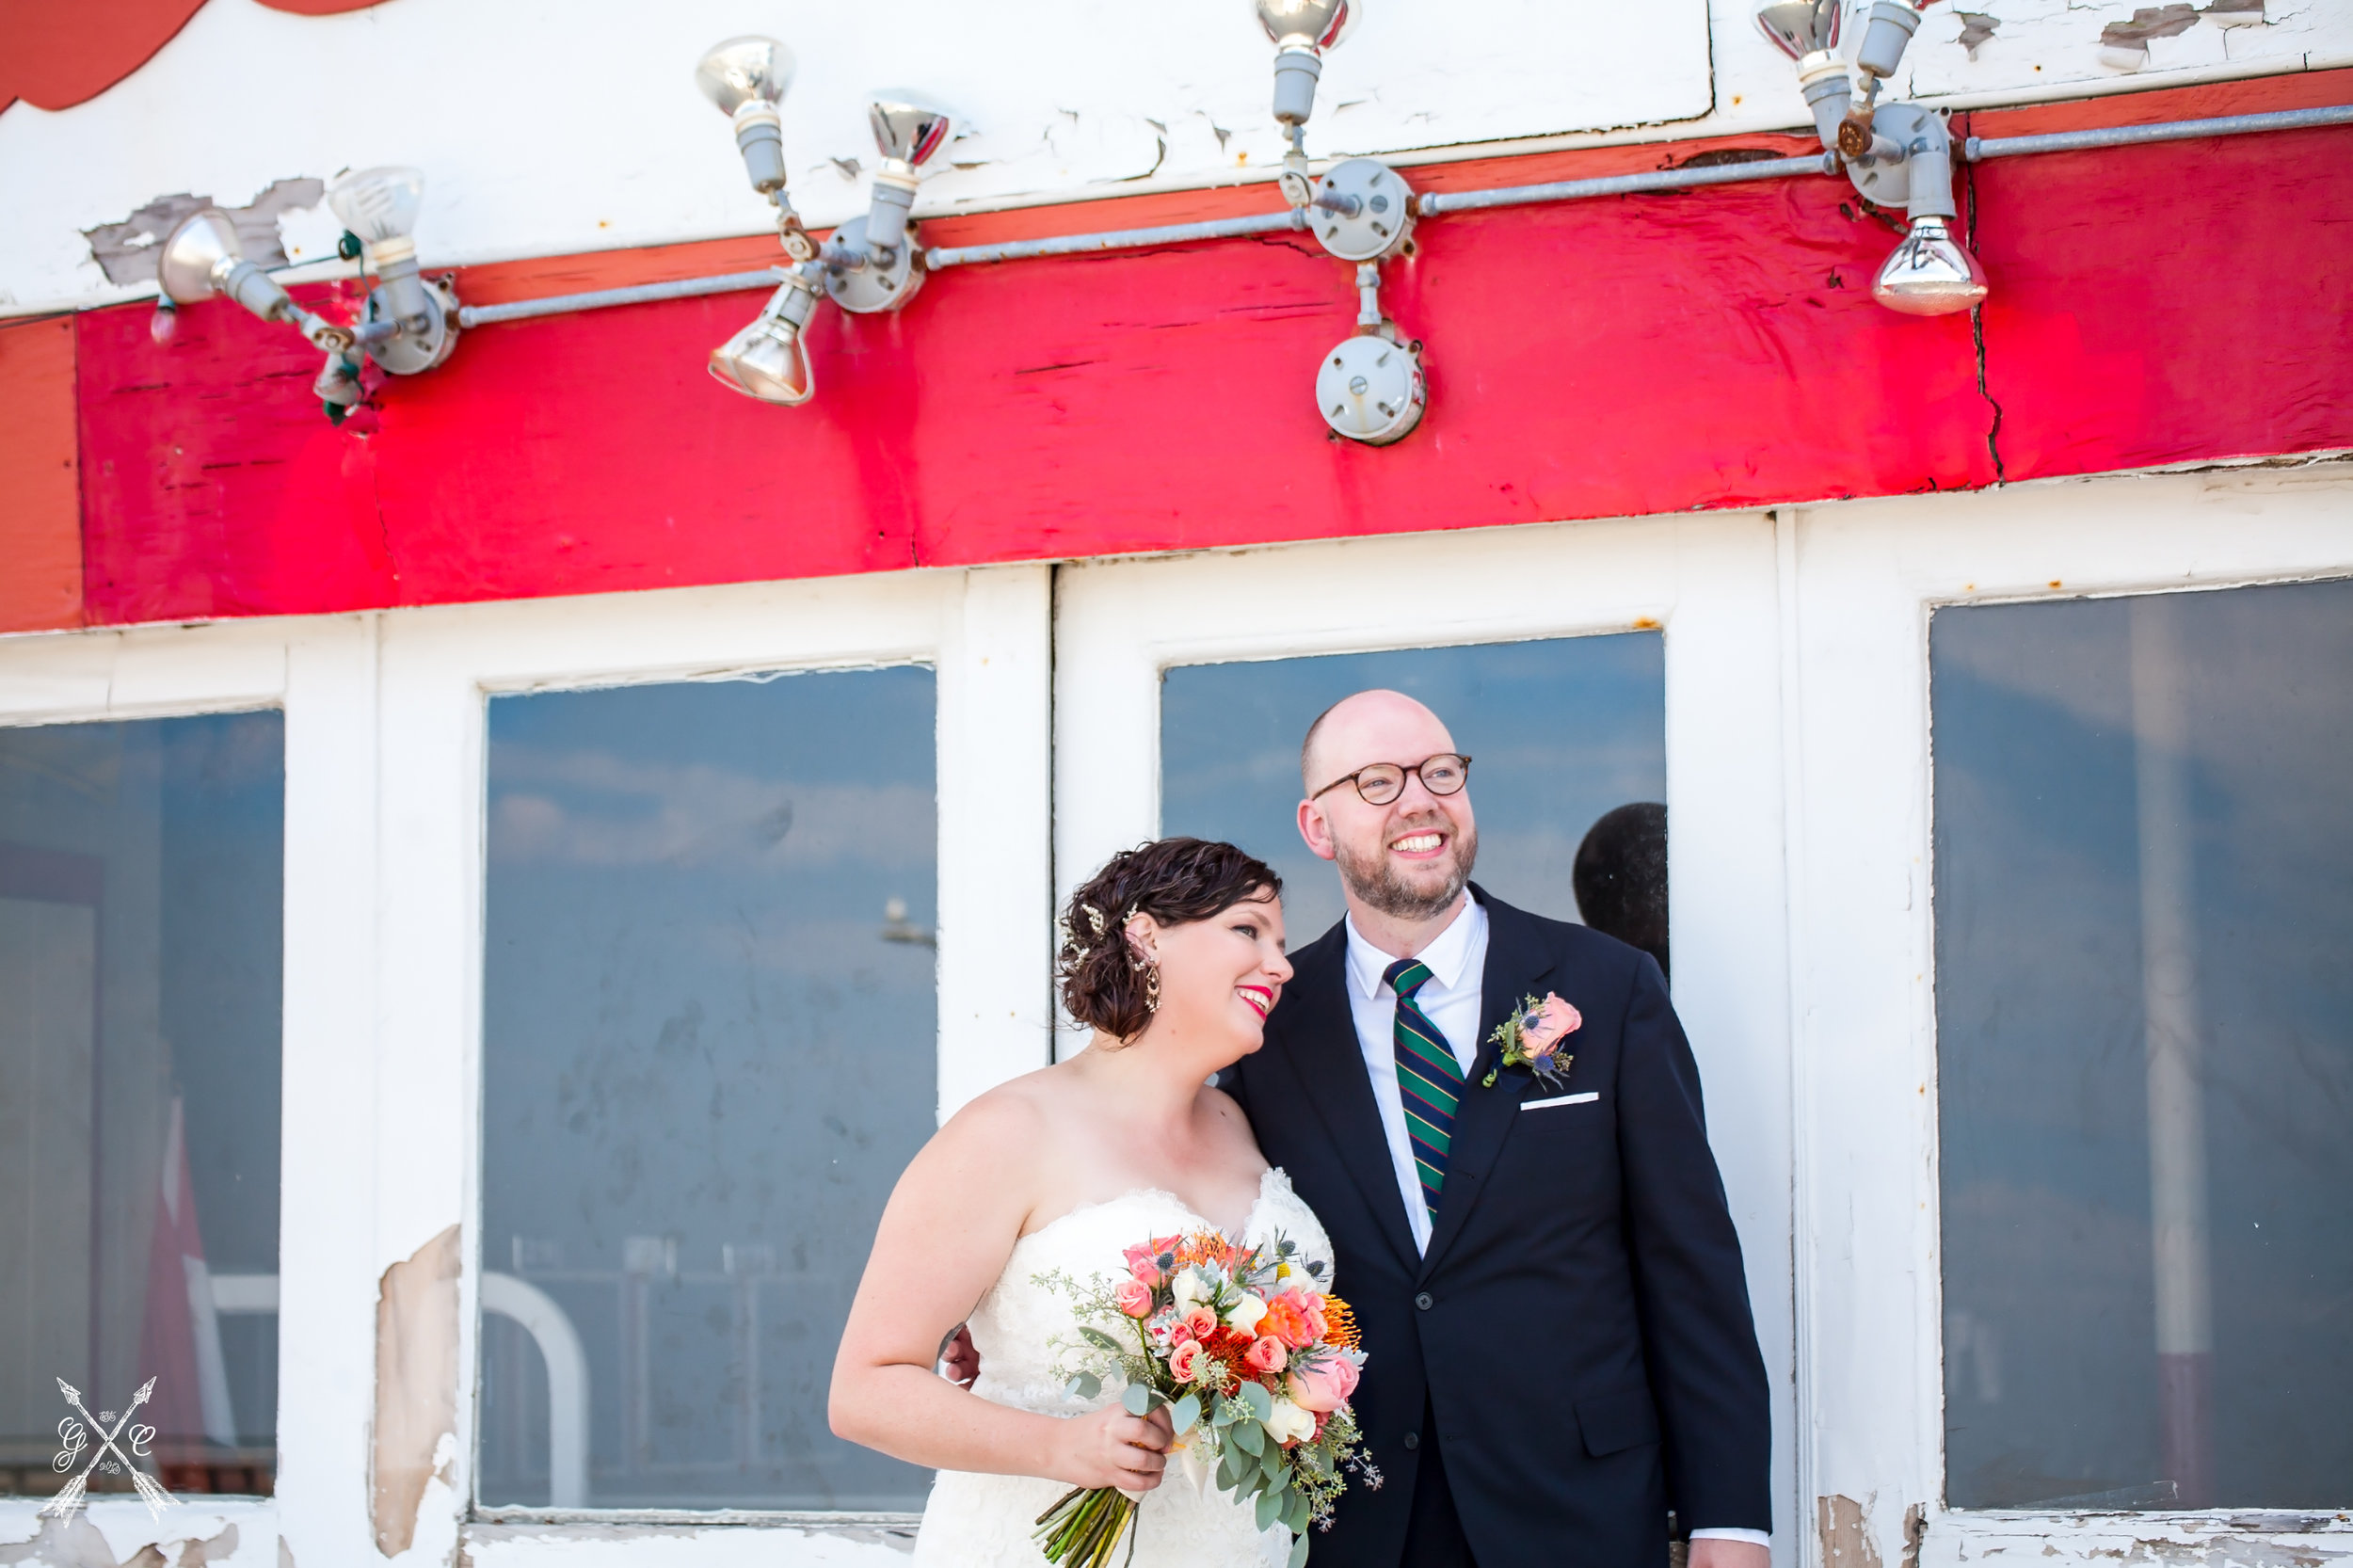 Lucy + Oliver before their Nantasket Beach Resort wedding (Hull, MA)